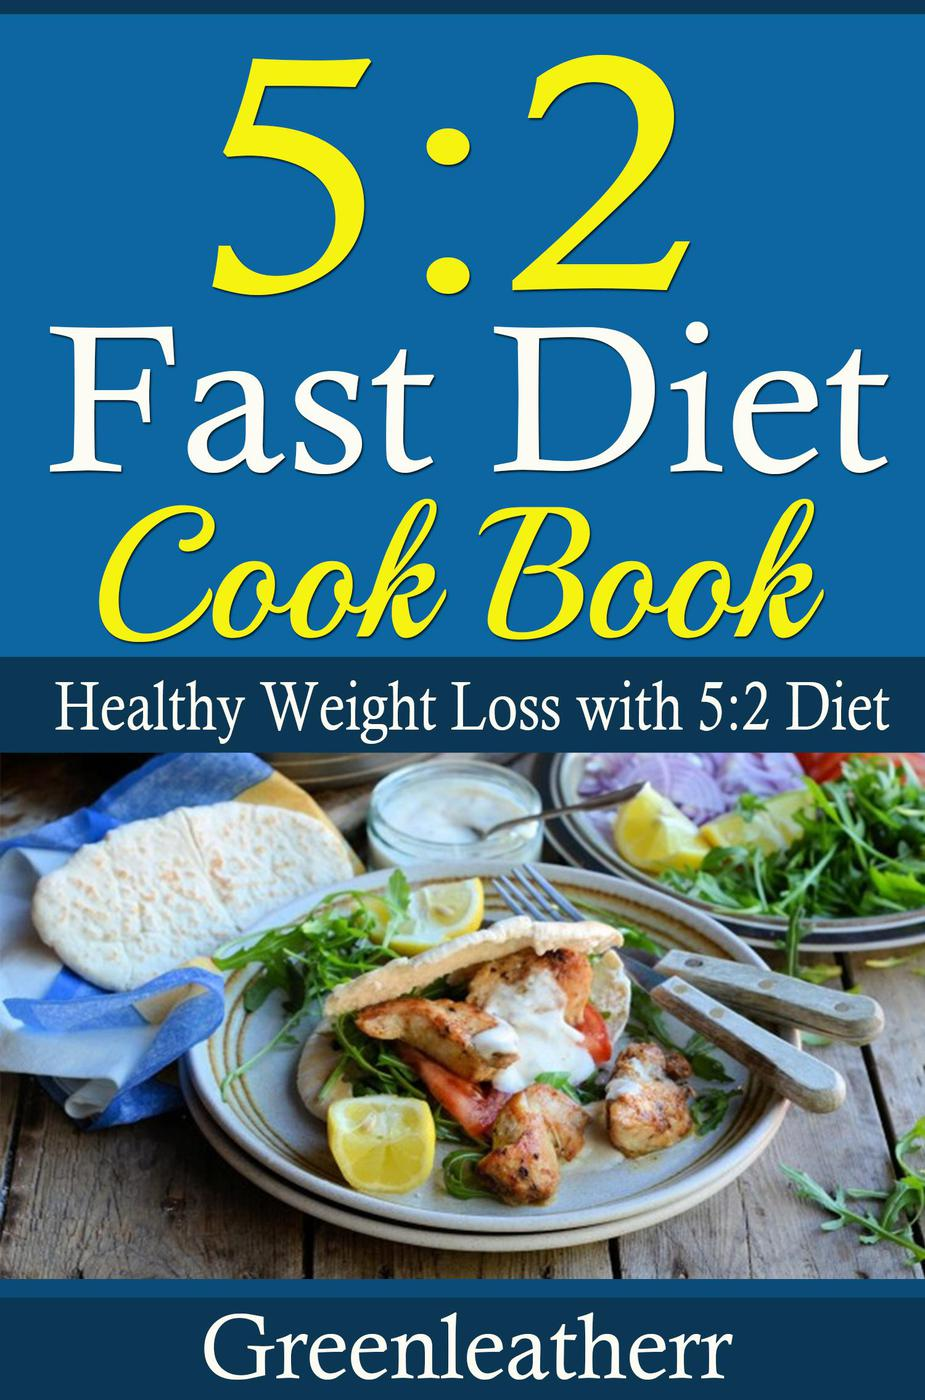 5:2 Diet: 52 Fast Diet Cookbook to deal with fat & obesity - Healthy Weight Loss